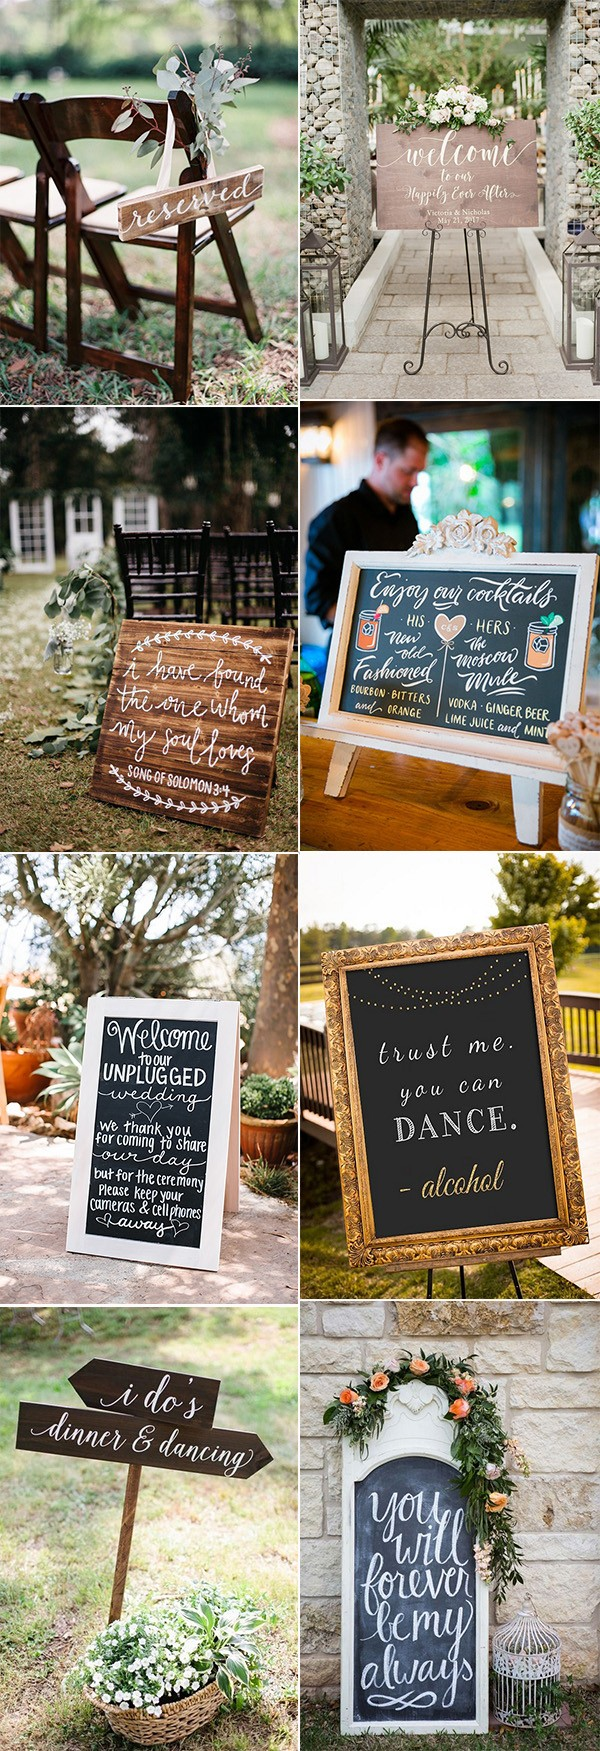 signs for outdoor wedding ideas